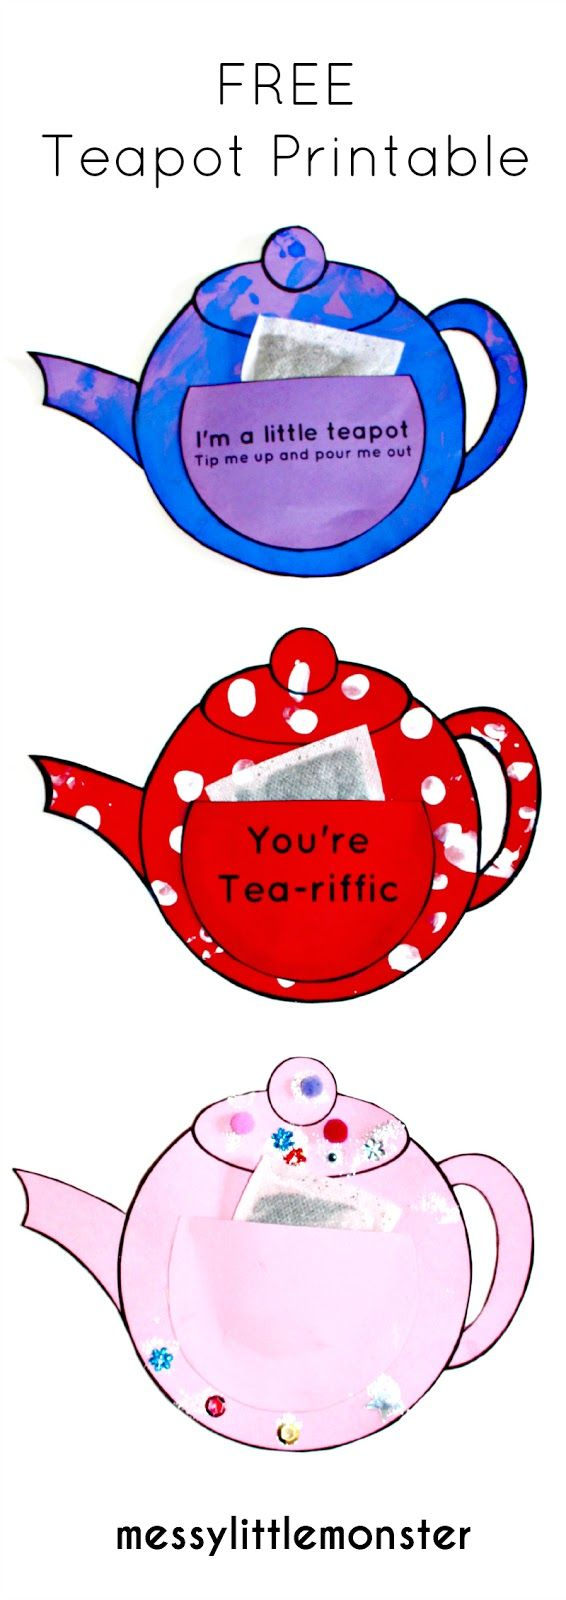 Teapot craft for kids with free printable.  A simple activity for mothers day, fathers day or teachers.  A  thank you card that babies, toddlers, preschoolers. Perfect activity for the nursery rhyme 'i'm a little teapot'.